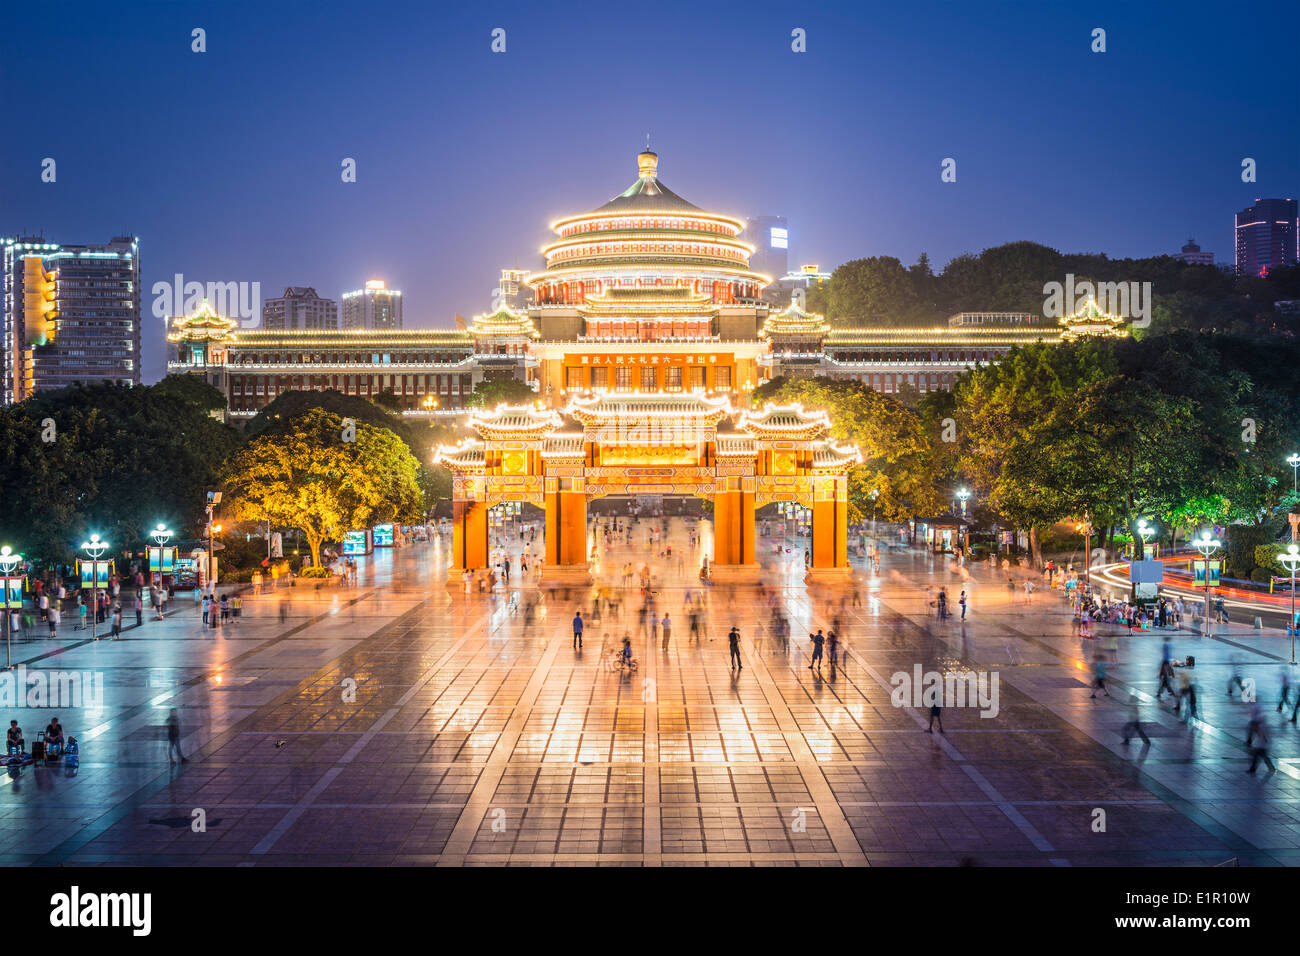 Chongqing, China at Great Hall of the People and People's Square. - Stock Image